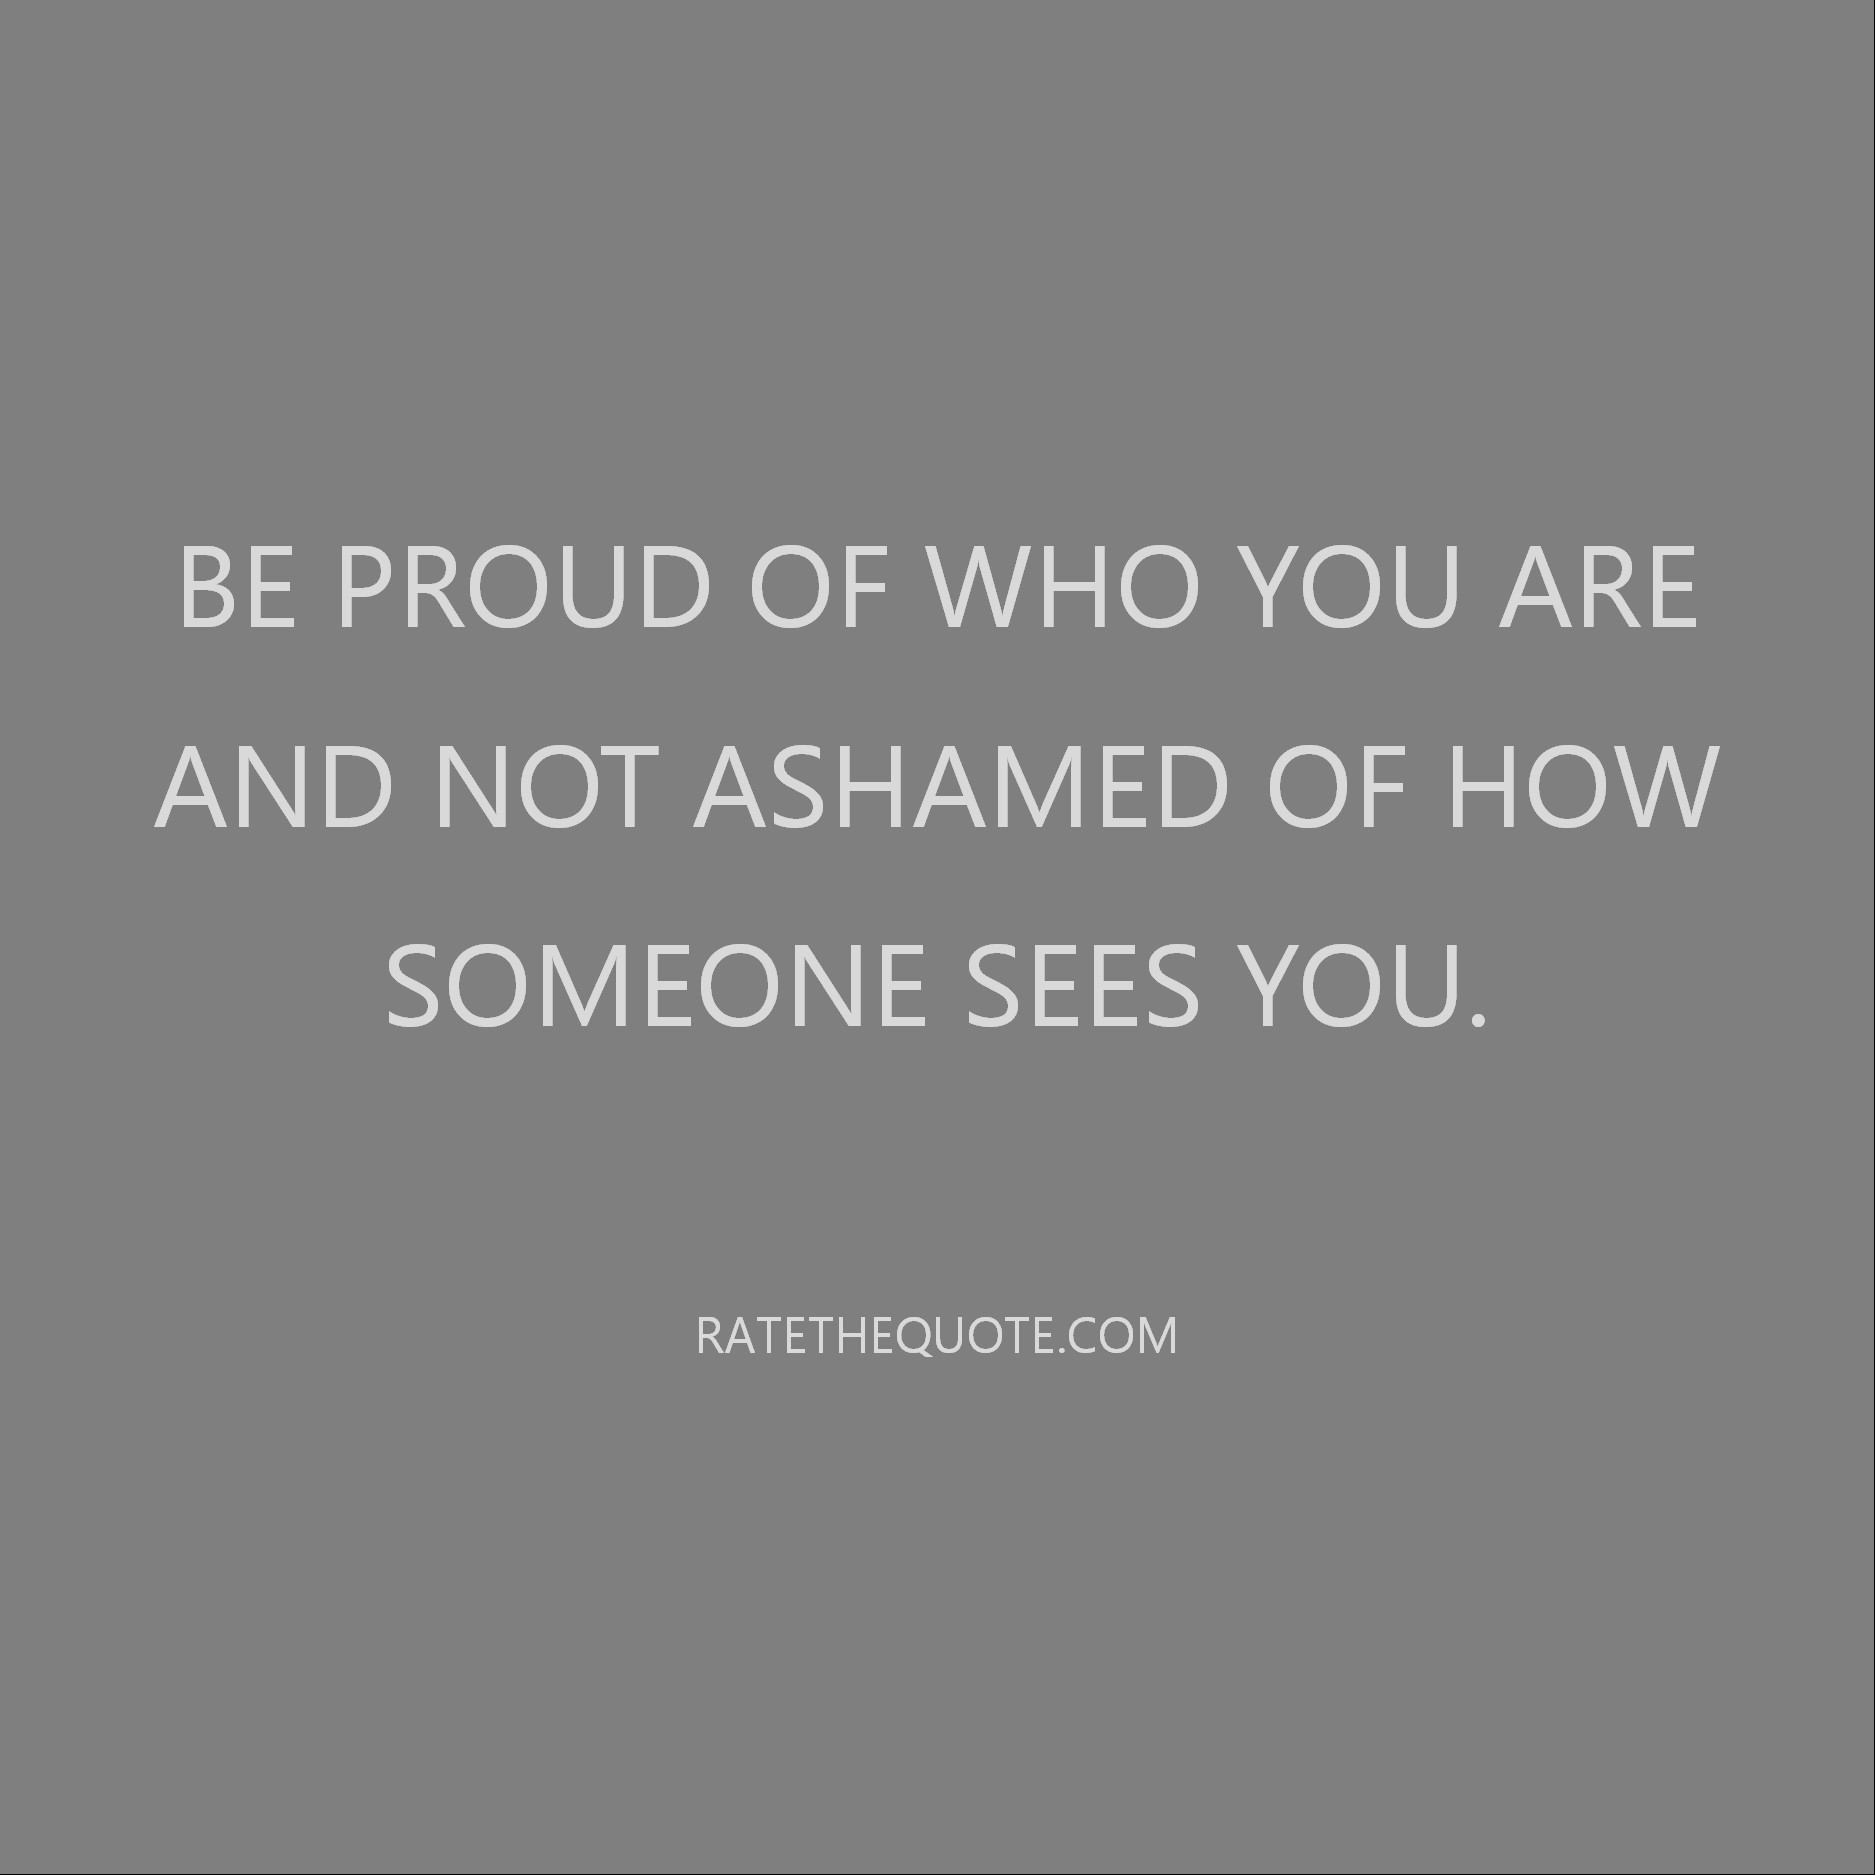 Quote To Think About Be proud of who you are and not ashamed of how someone sees you.